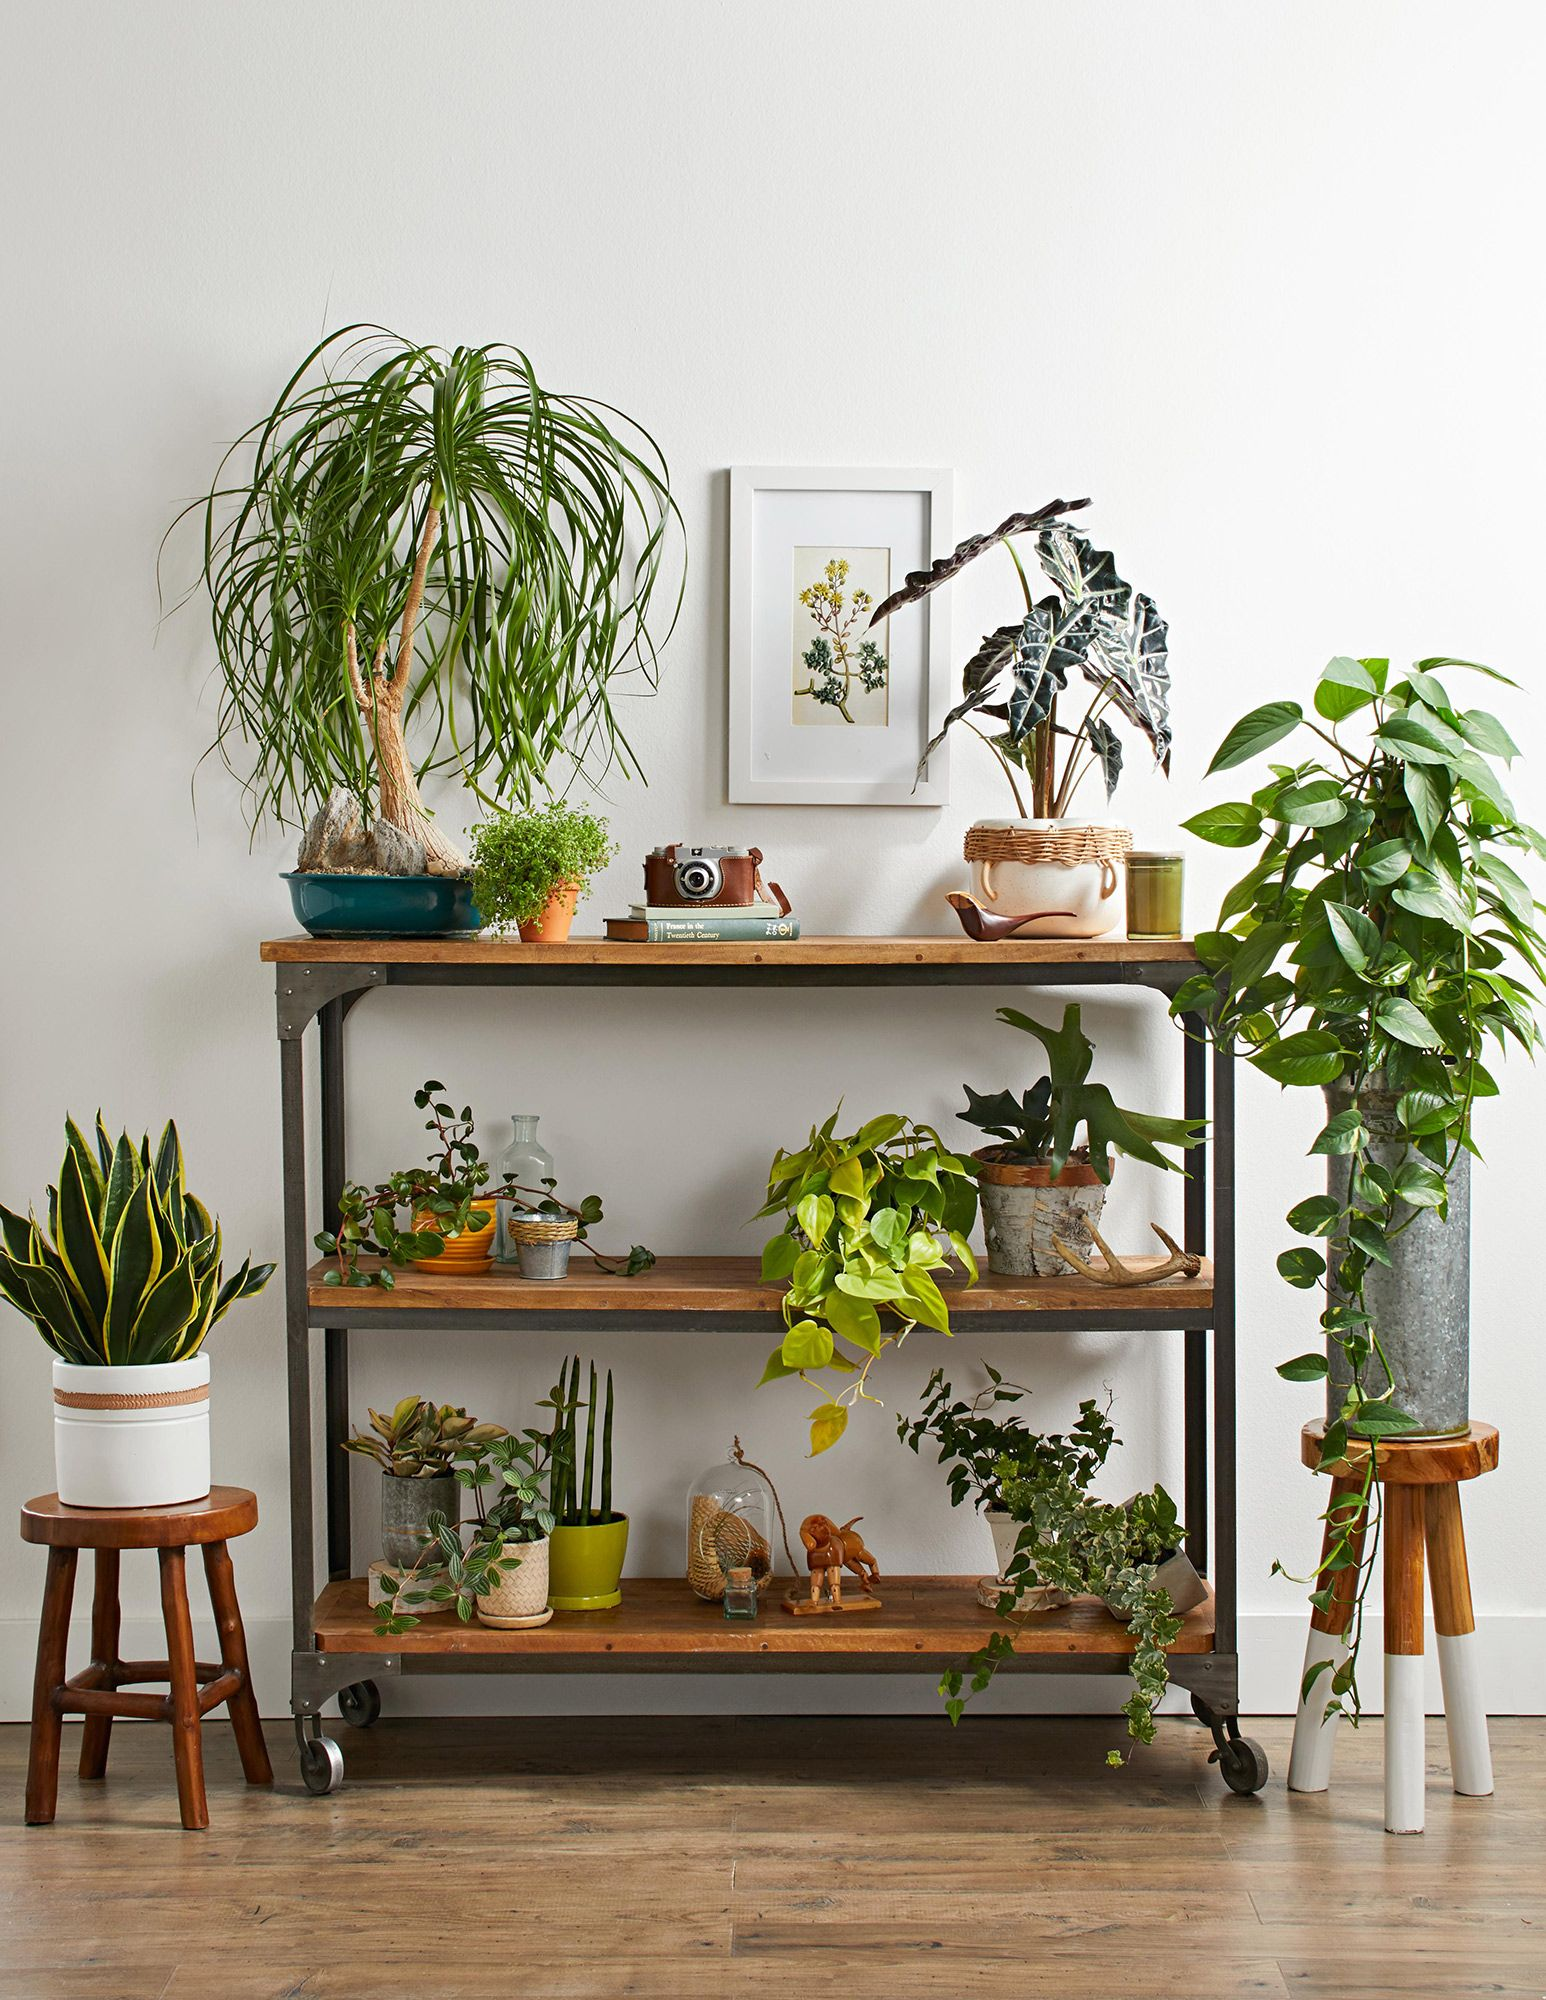 5 Houseplant Trends That Will Be Hot In 2020 Decor Living Decor Decorating Your Home